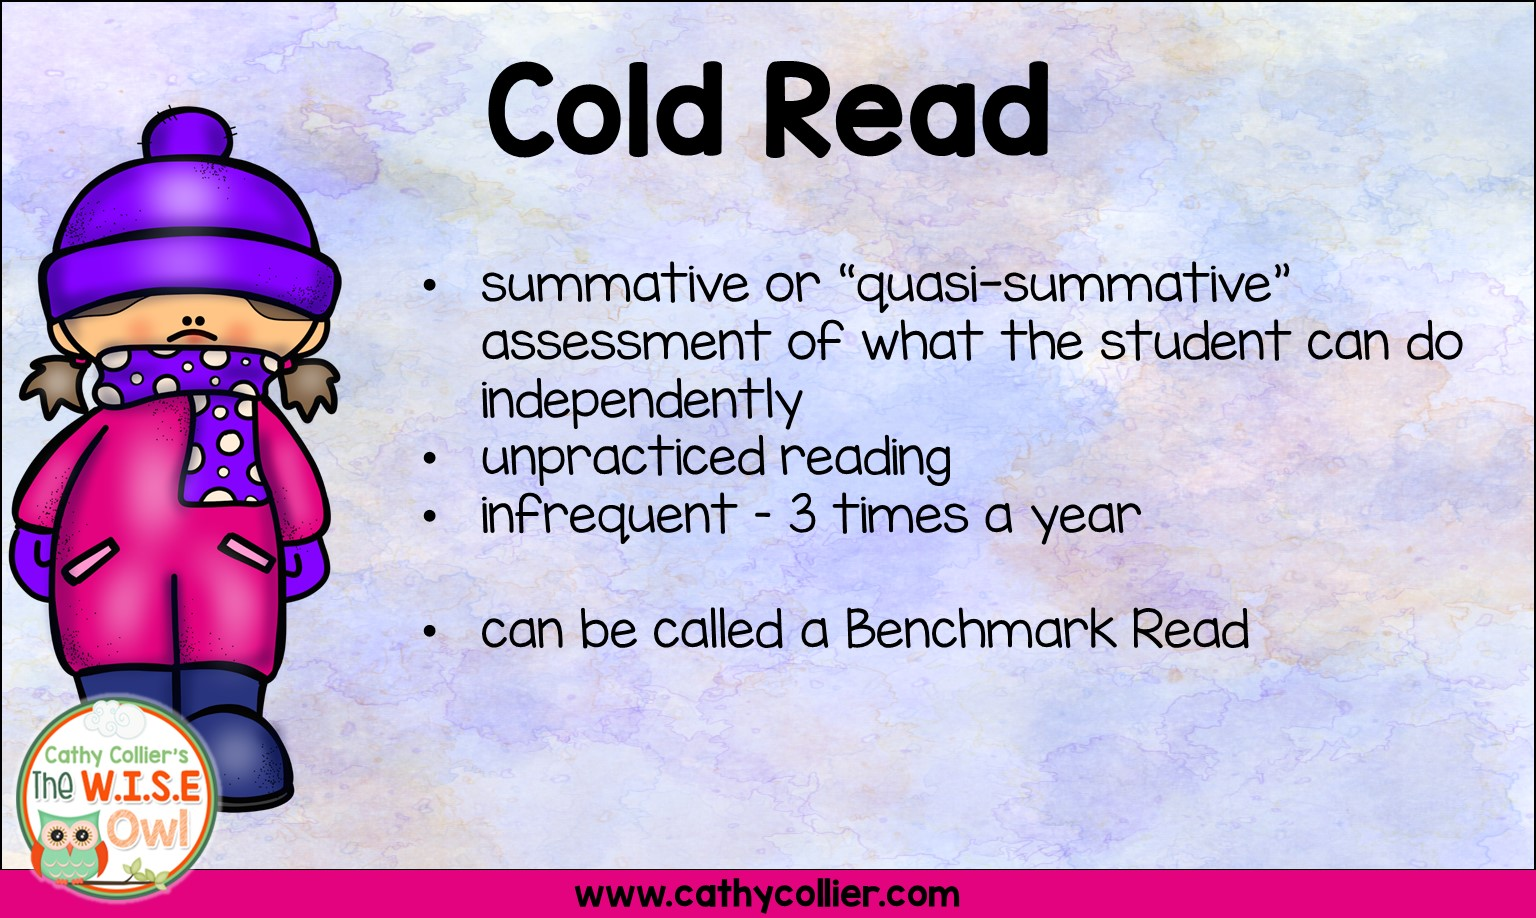 Cold reading (theatrical)